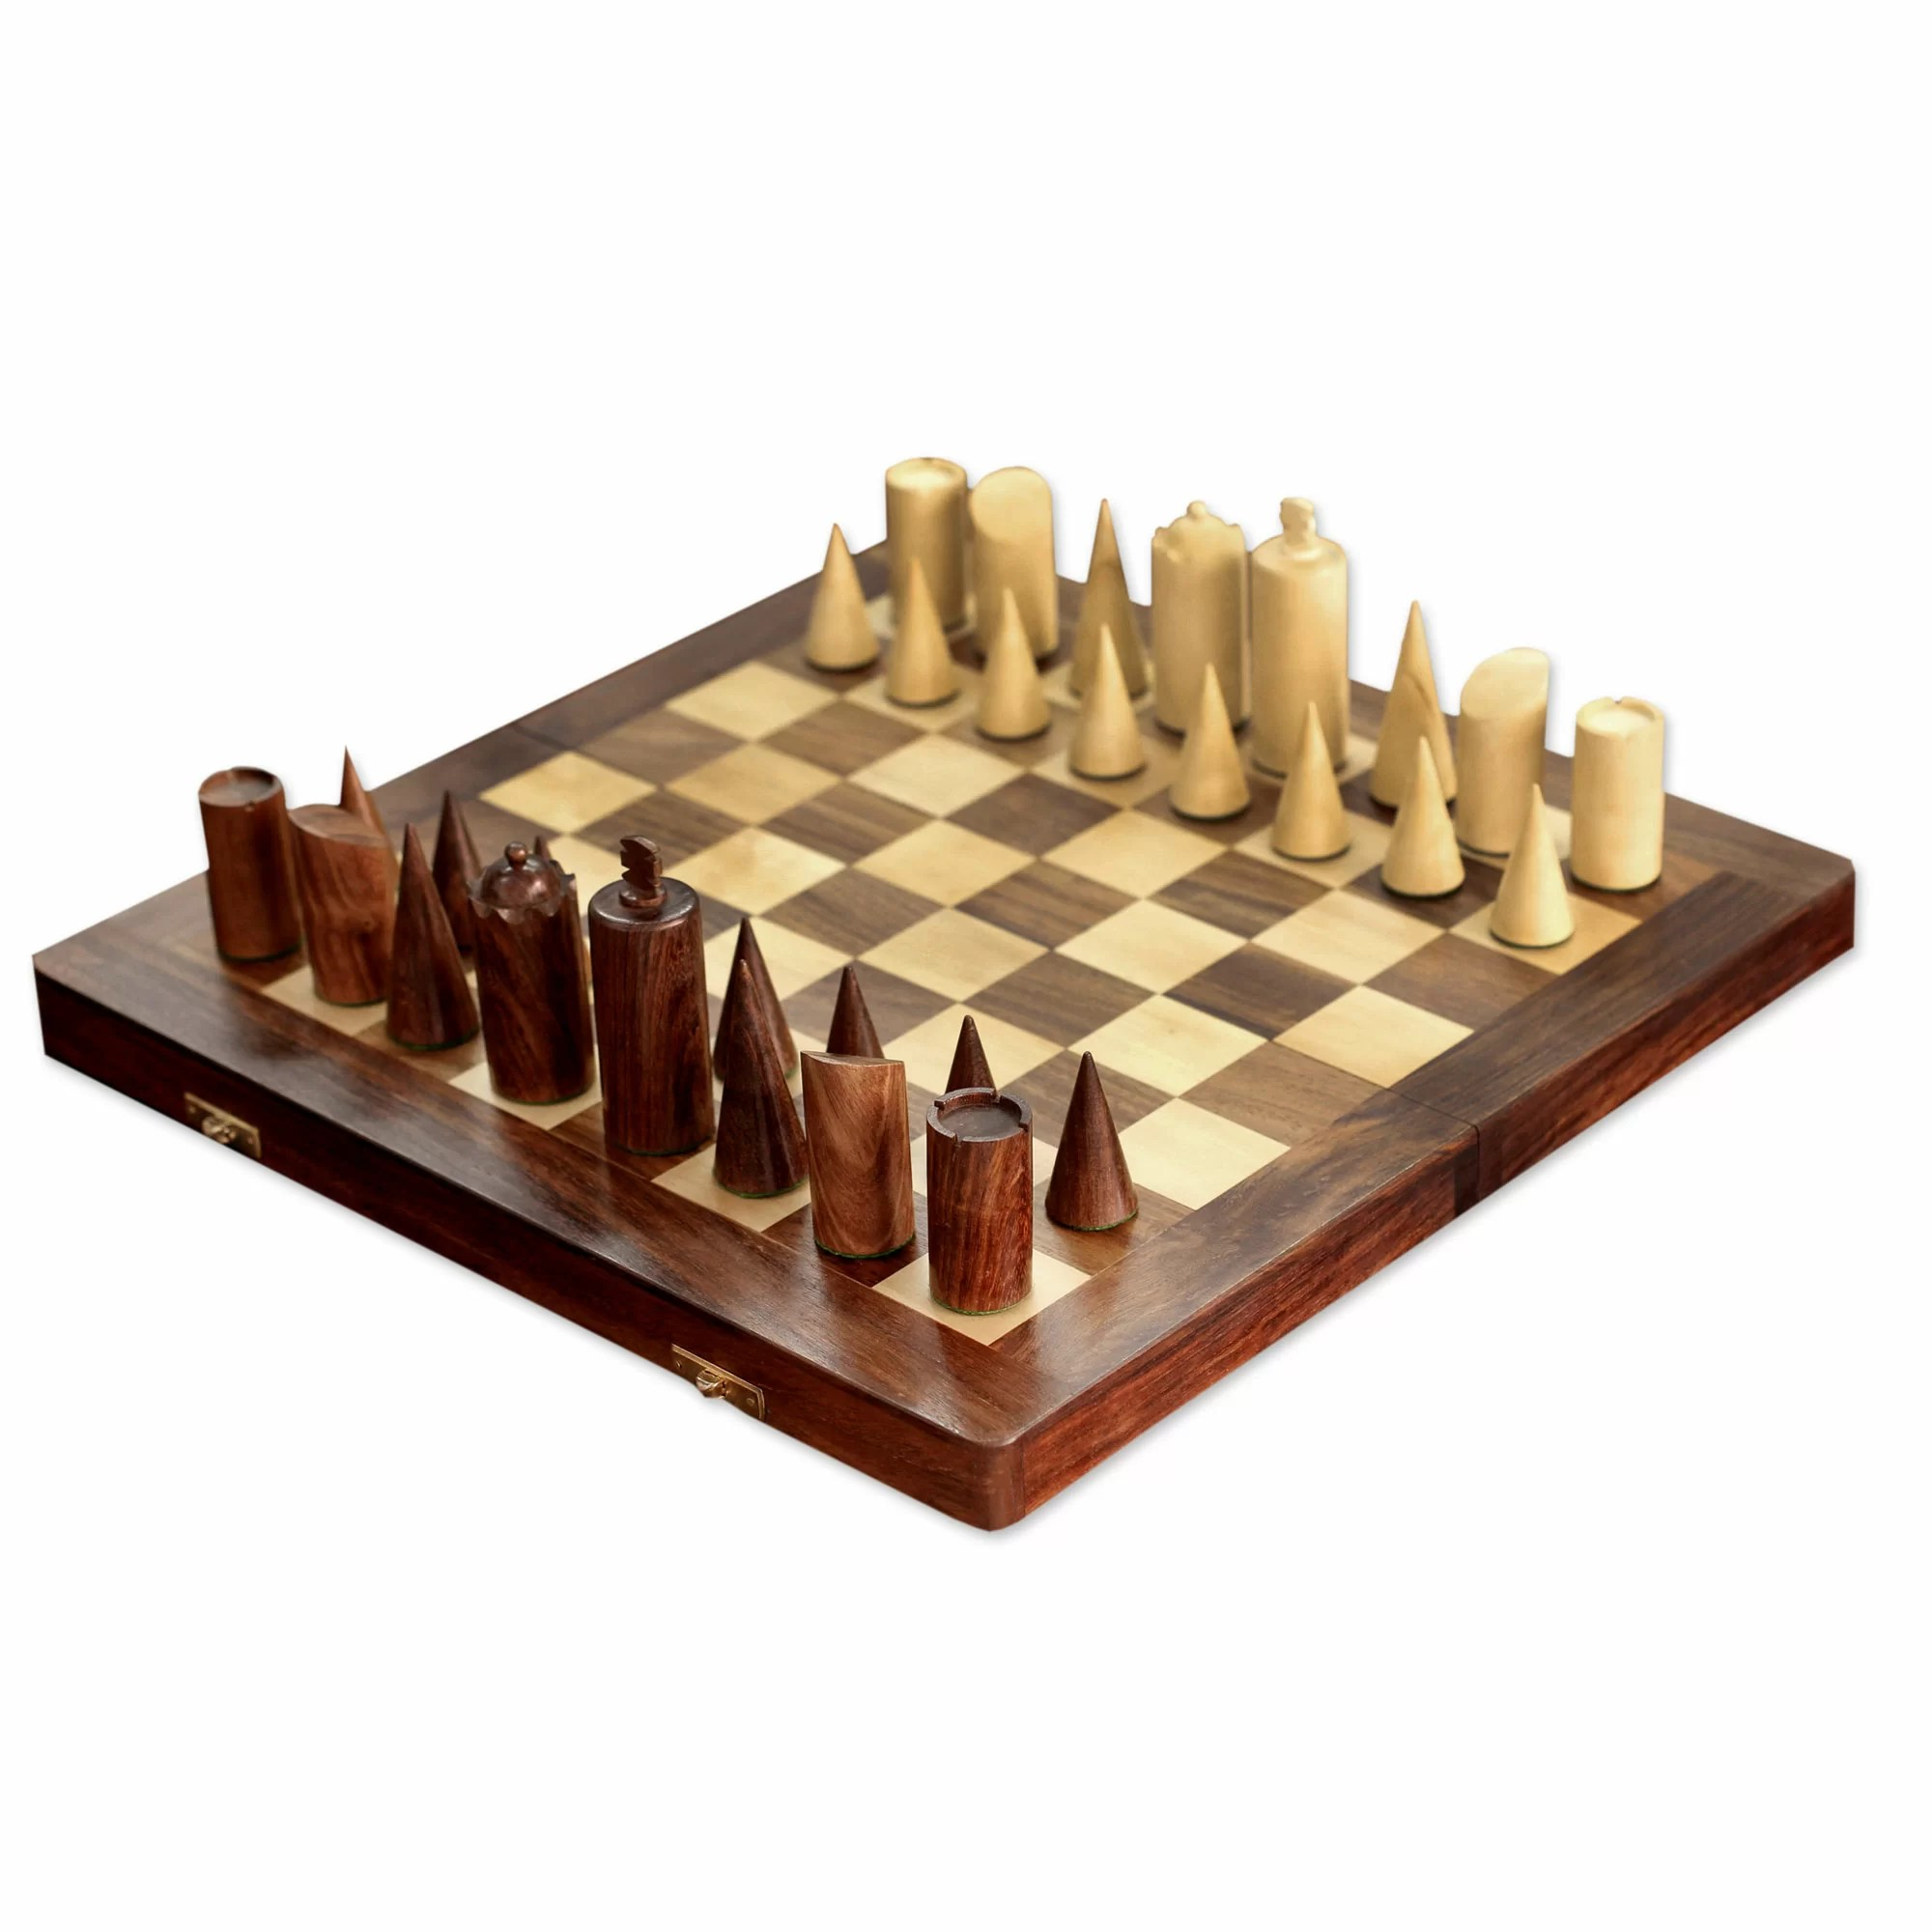 Chess Decor Decorative Chess Board Giant Aluminum Chess Set The